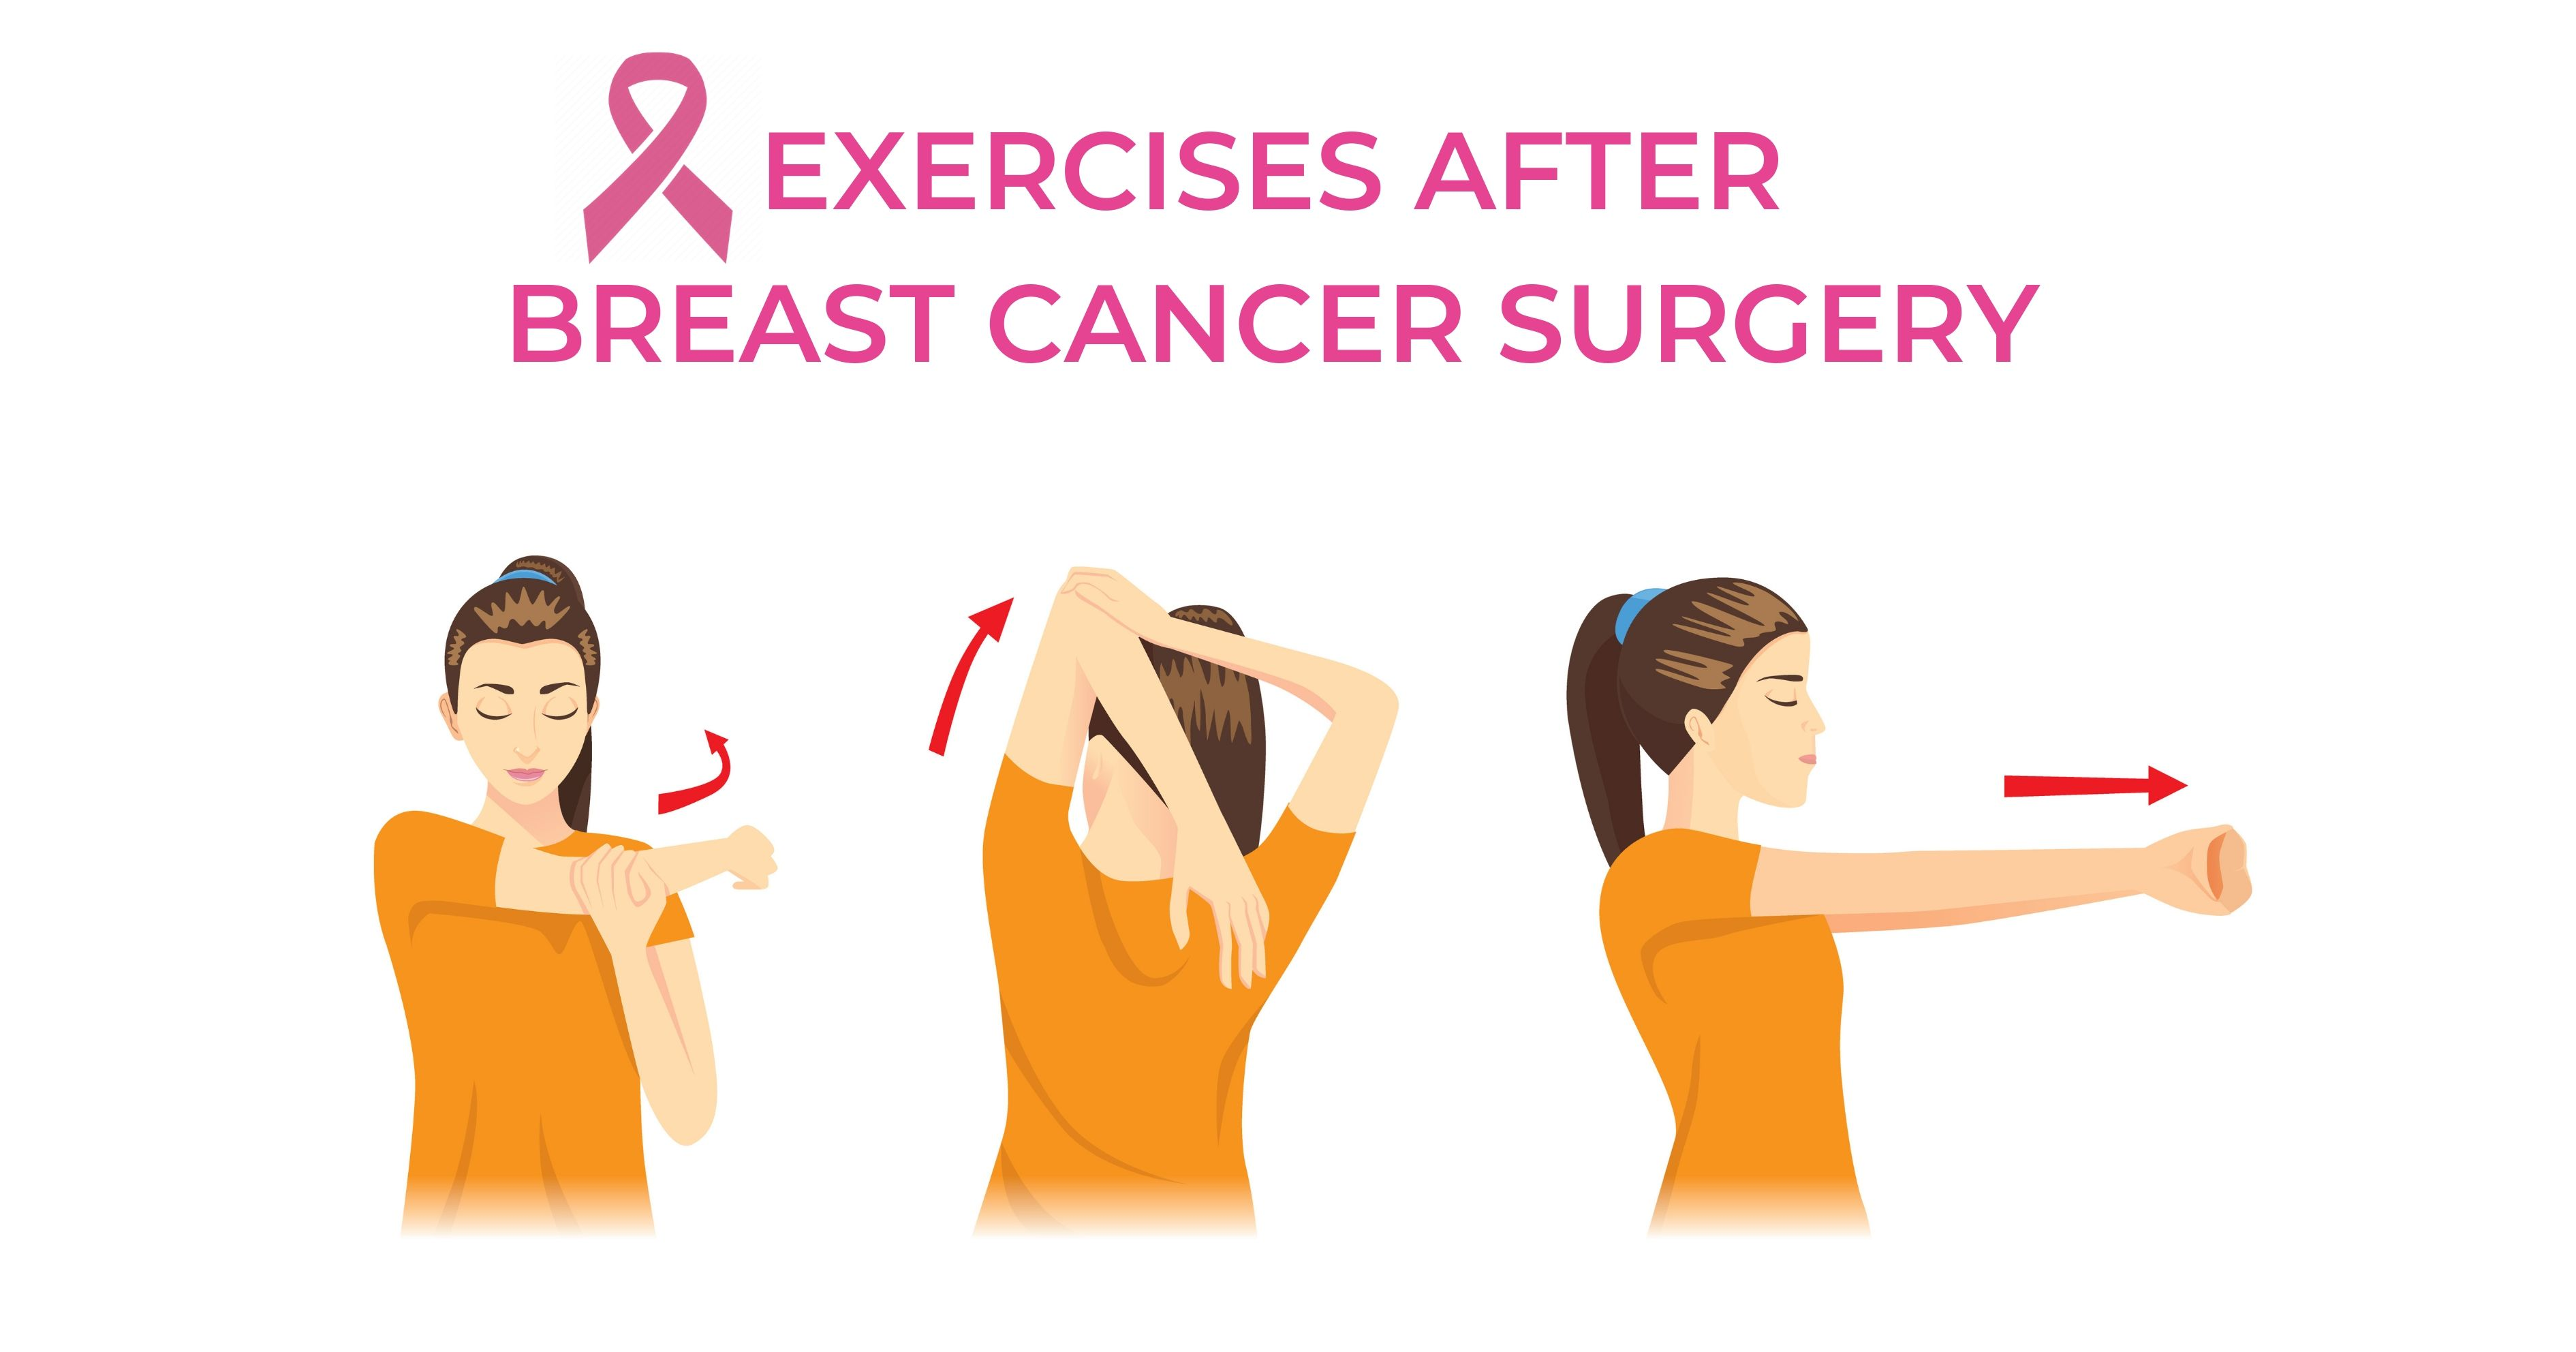 Exercises after breast cancer surgery